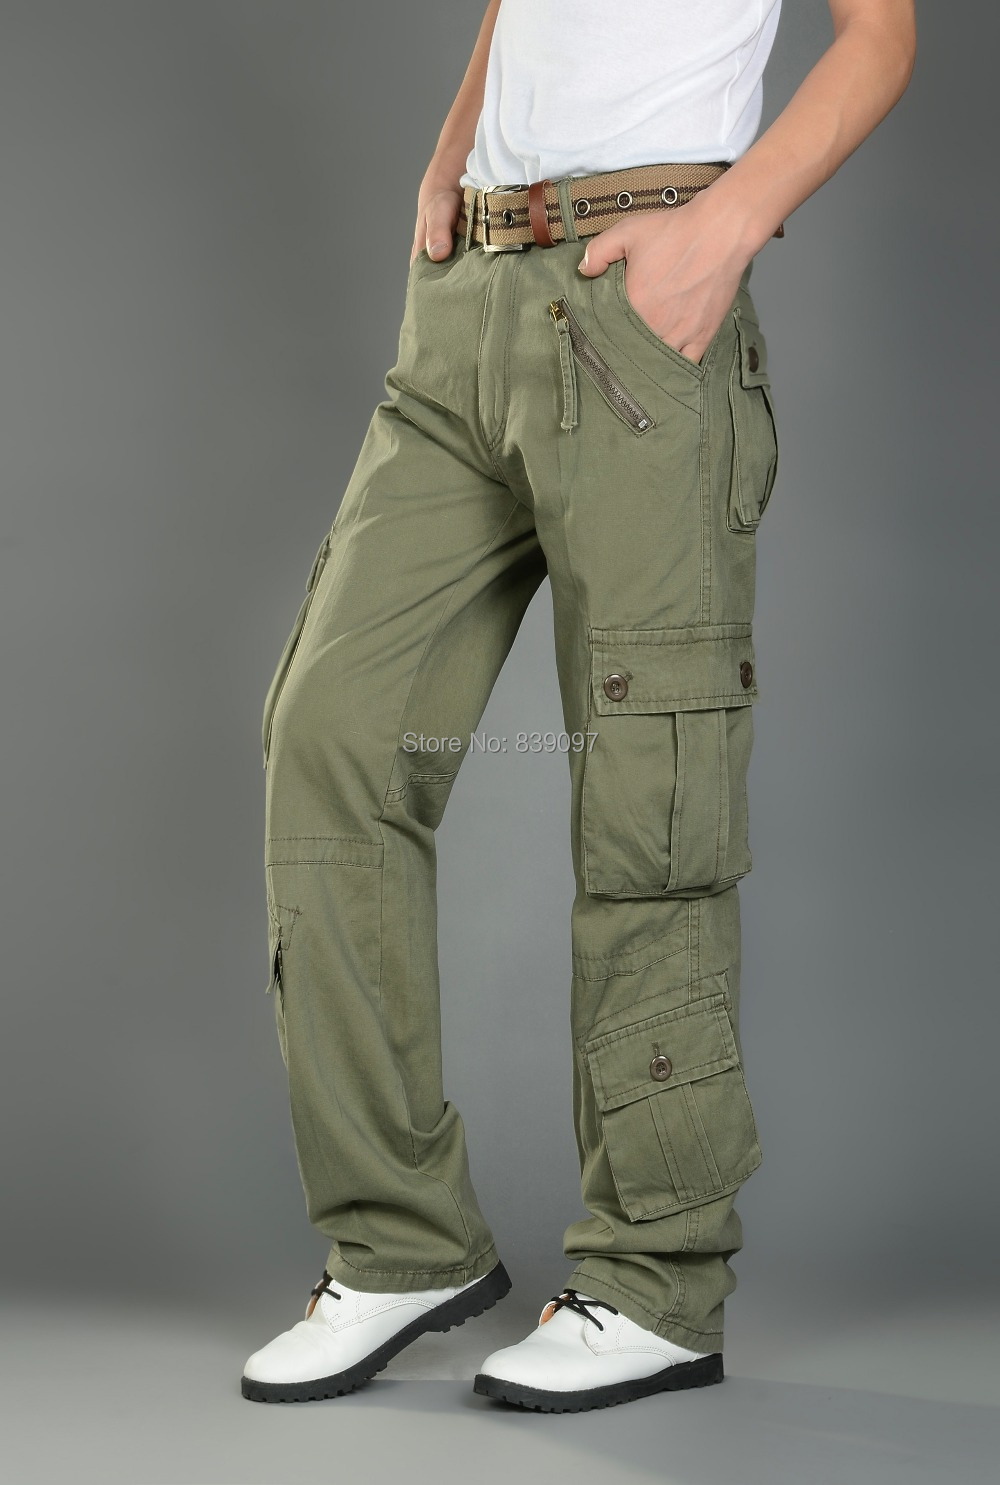 Online Shop 9 Pockets Mens Cargo Pants Grey & Army Green Cotton ...